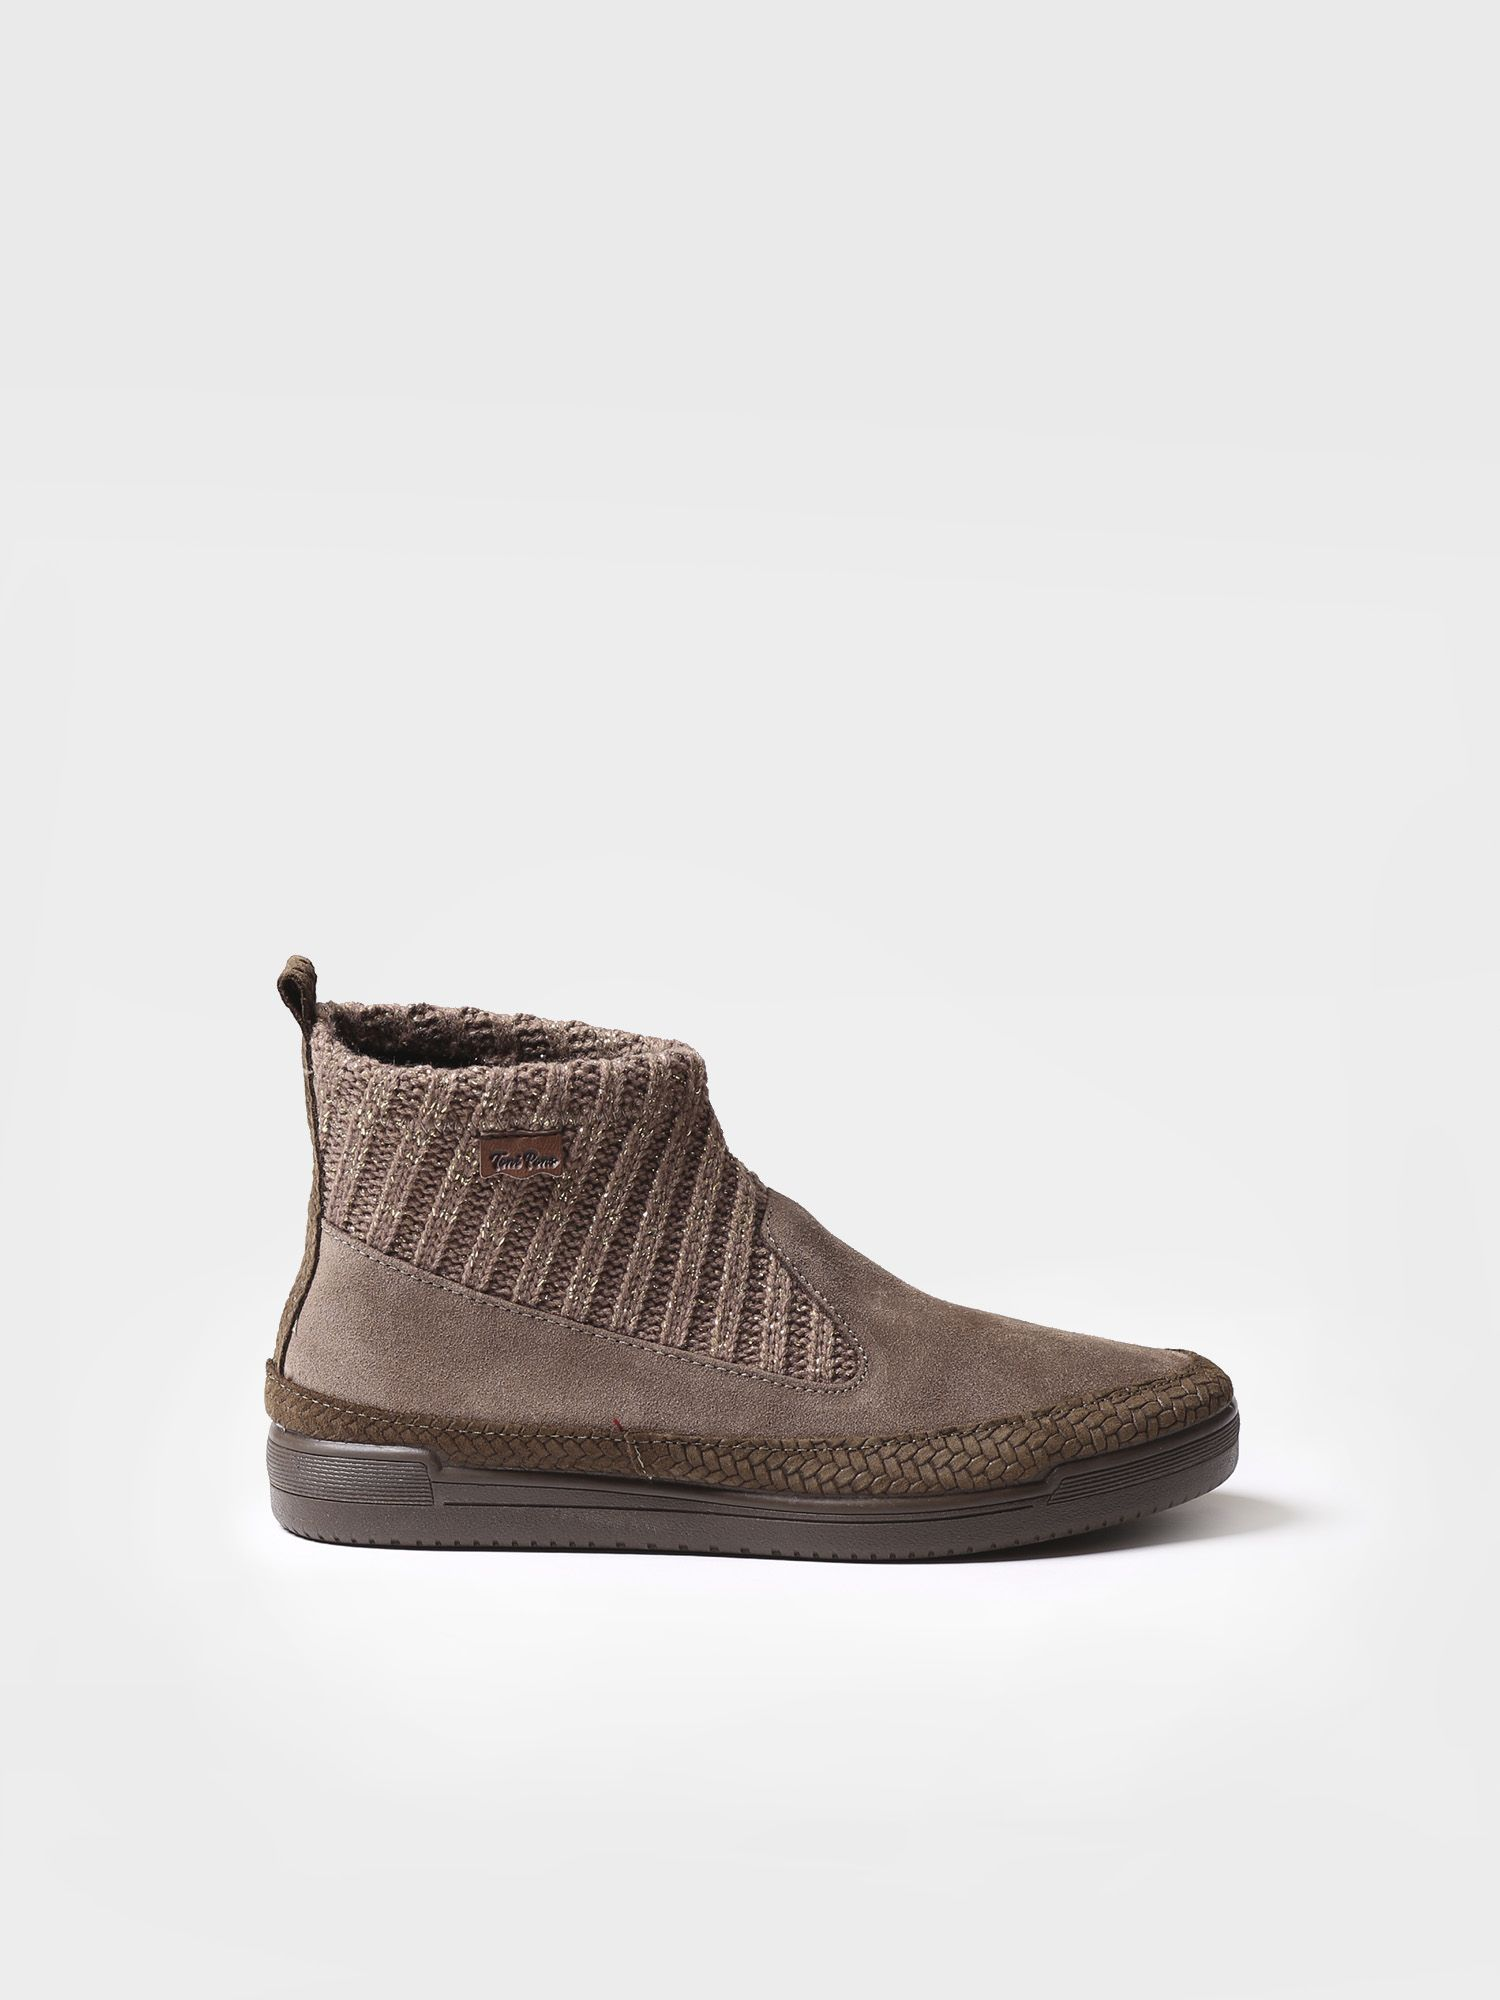 Ankle boot for women made of suede - GIGI-AX